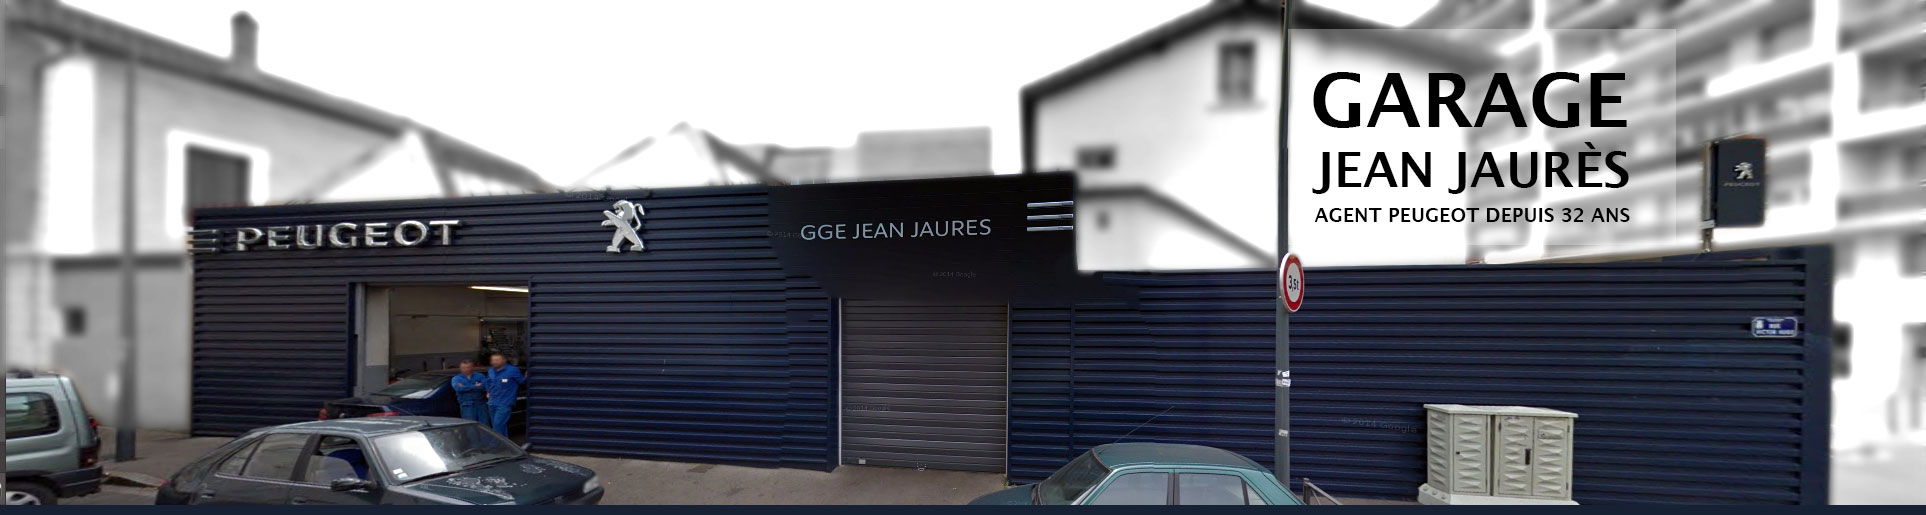 Garage jean jaur s peugeot contr le technique for Garage peugeot a lyon